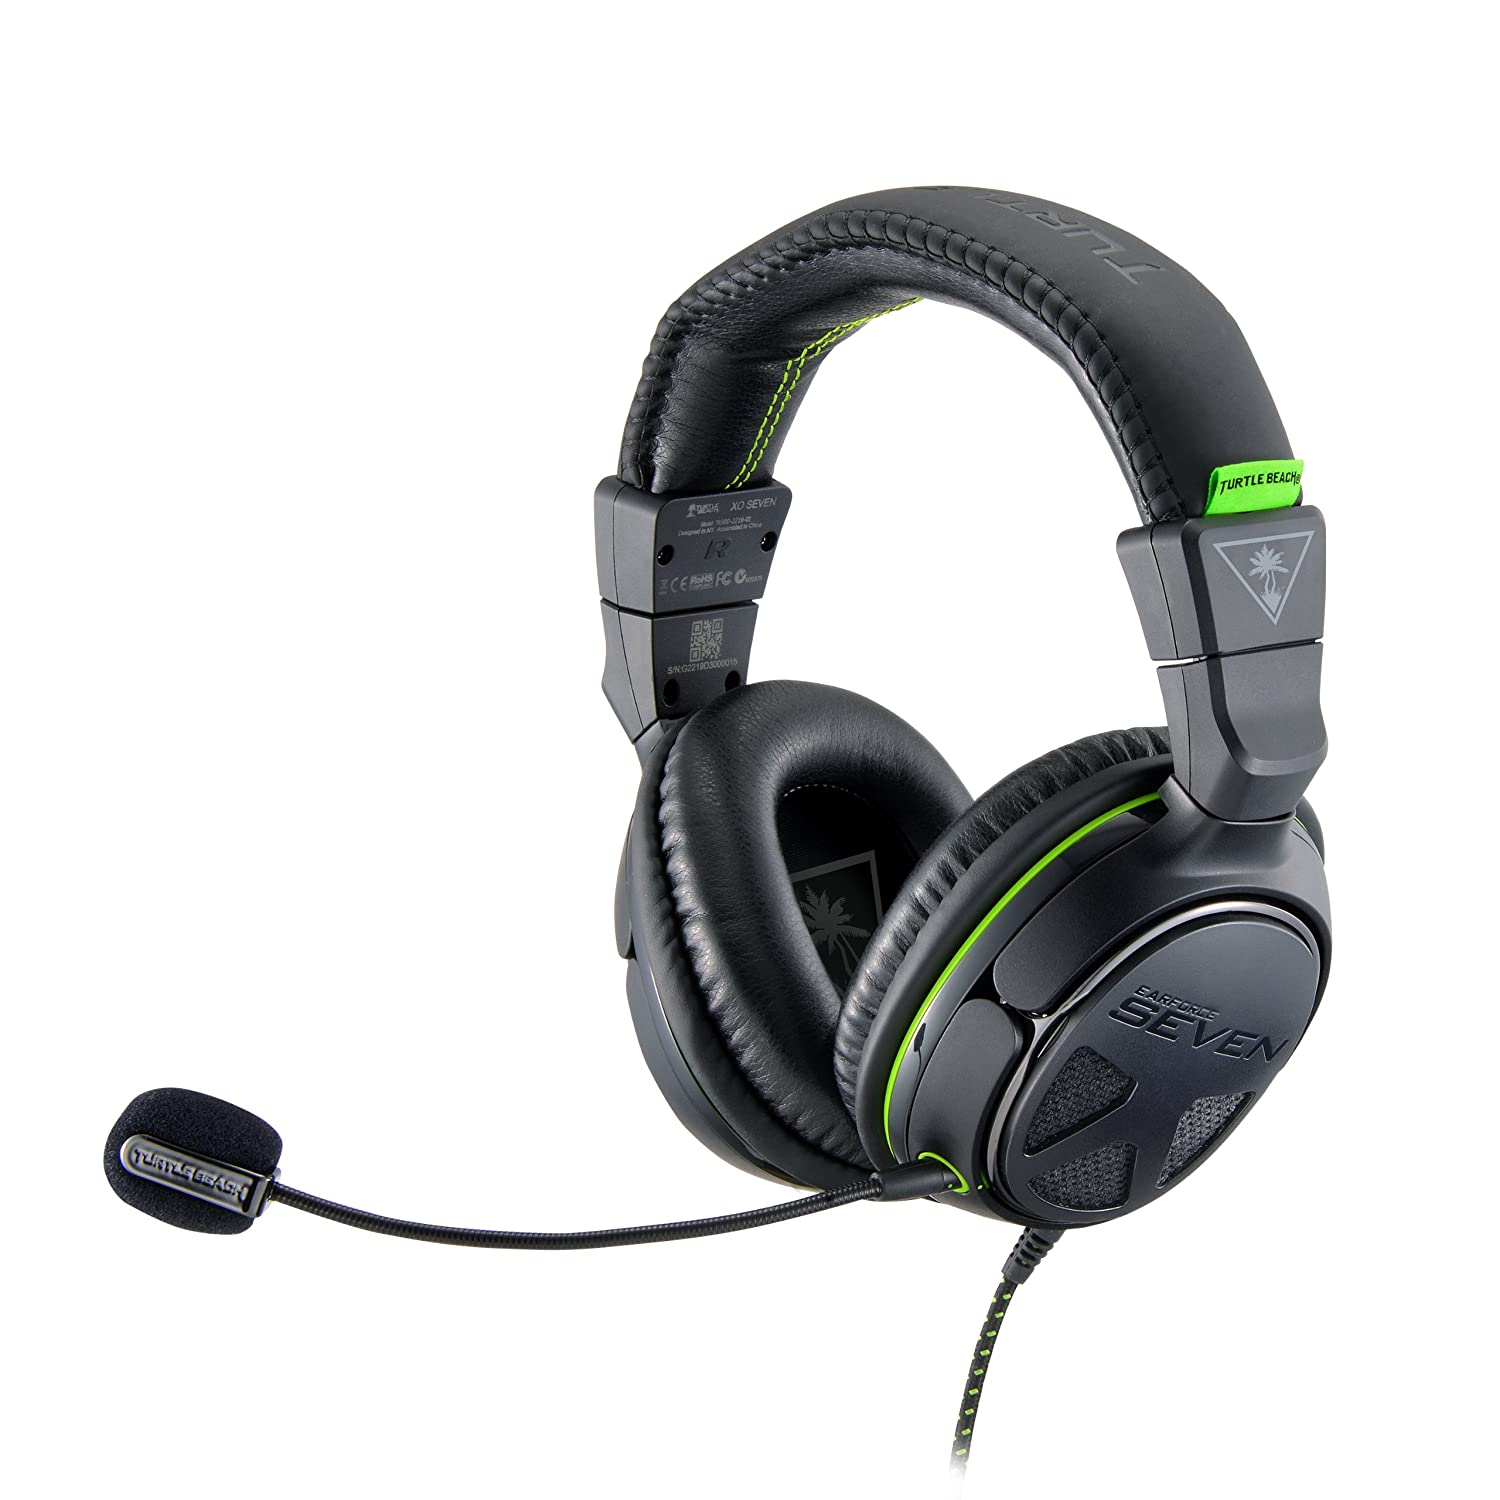 Turtle Beach - Ear Force XO Seven Premium Gaming Headset - Xbox One